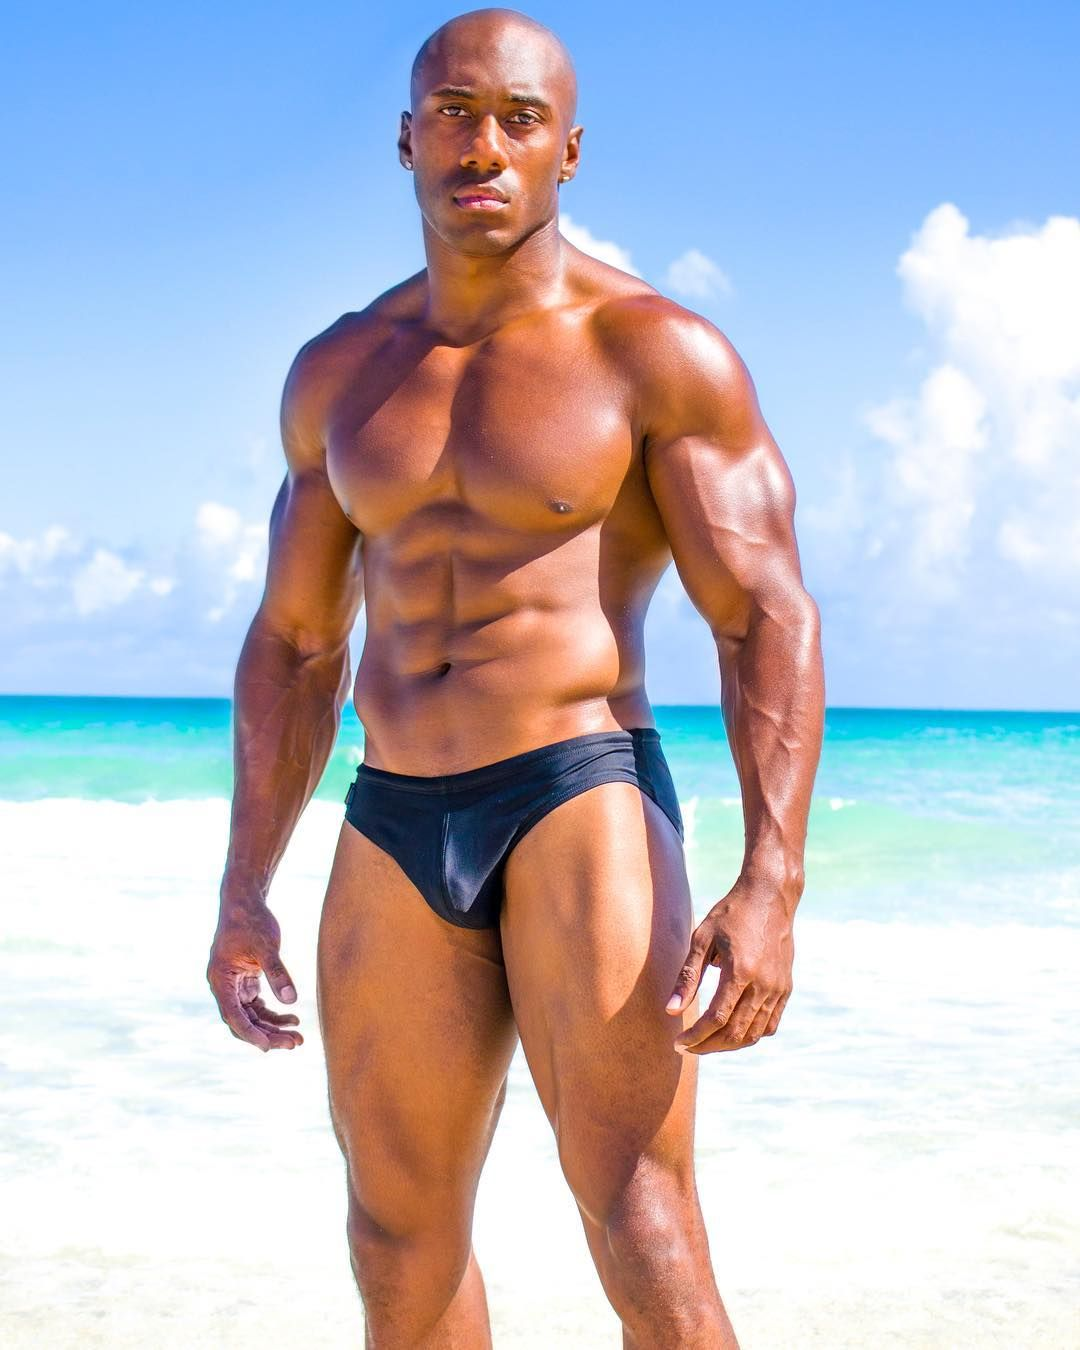 black-man-naked-on-beach-muscles